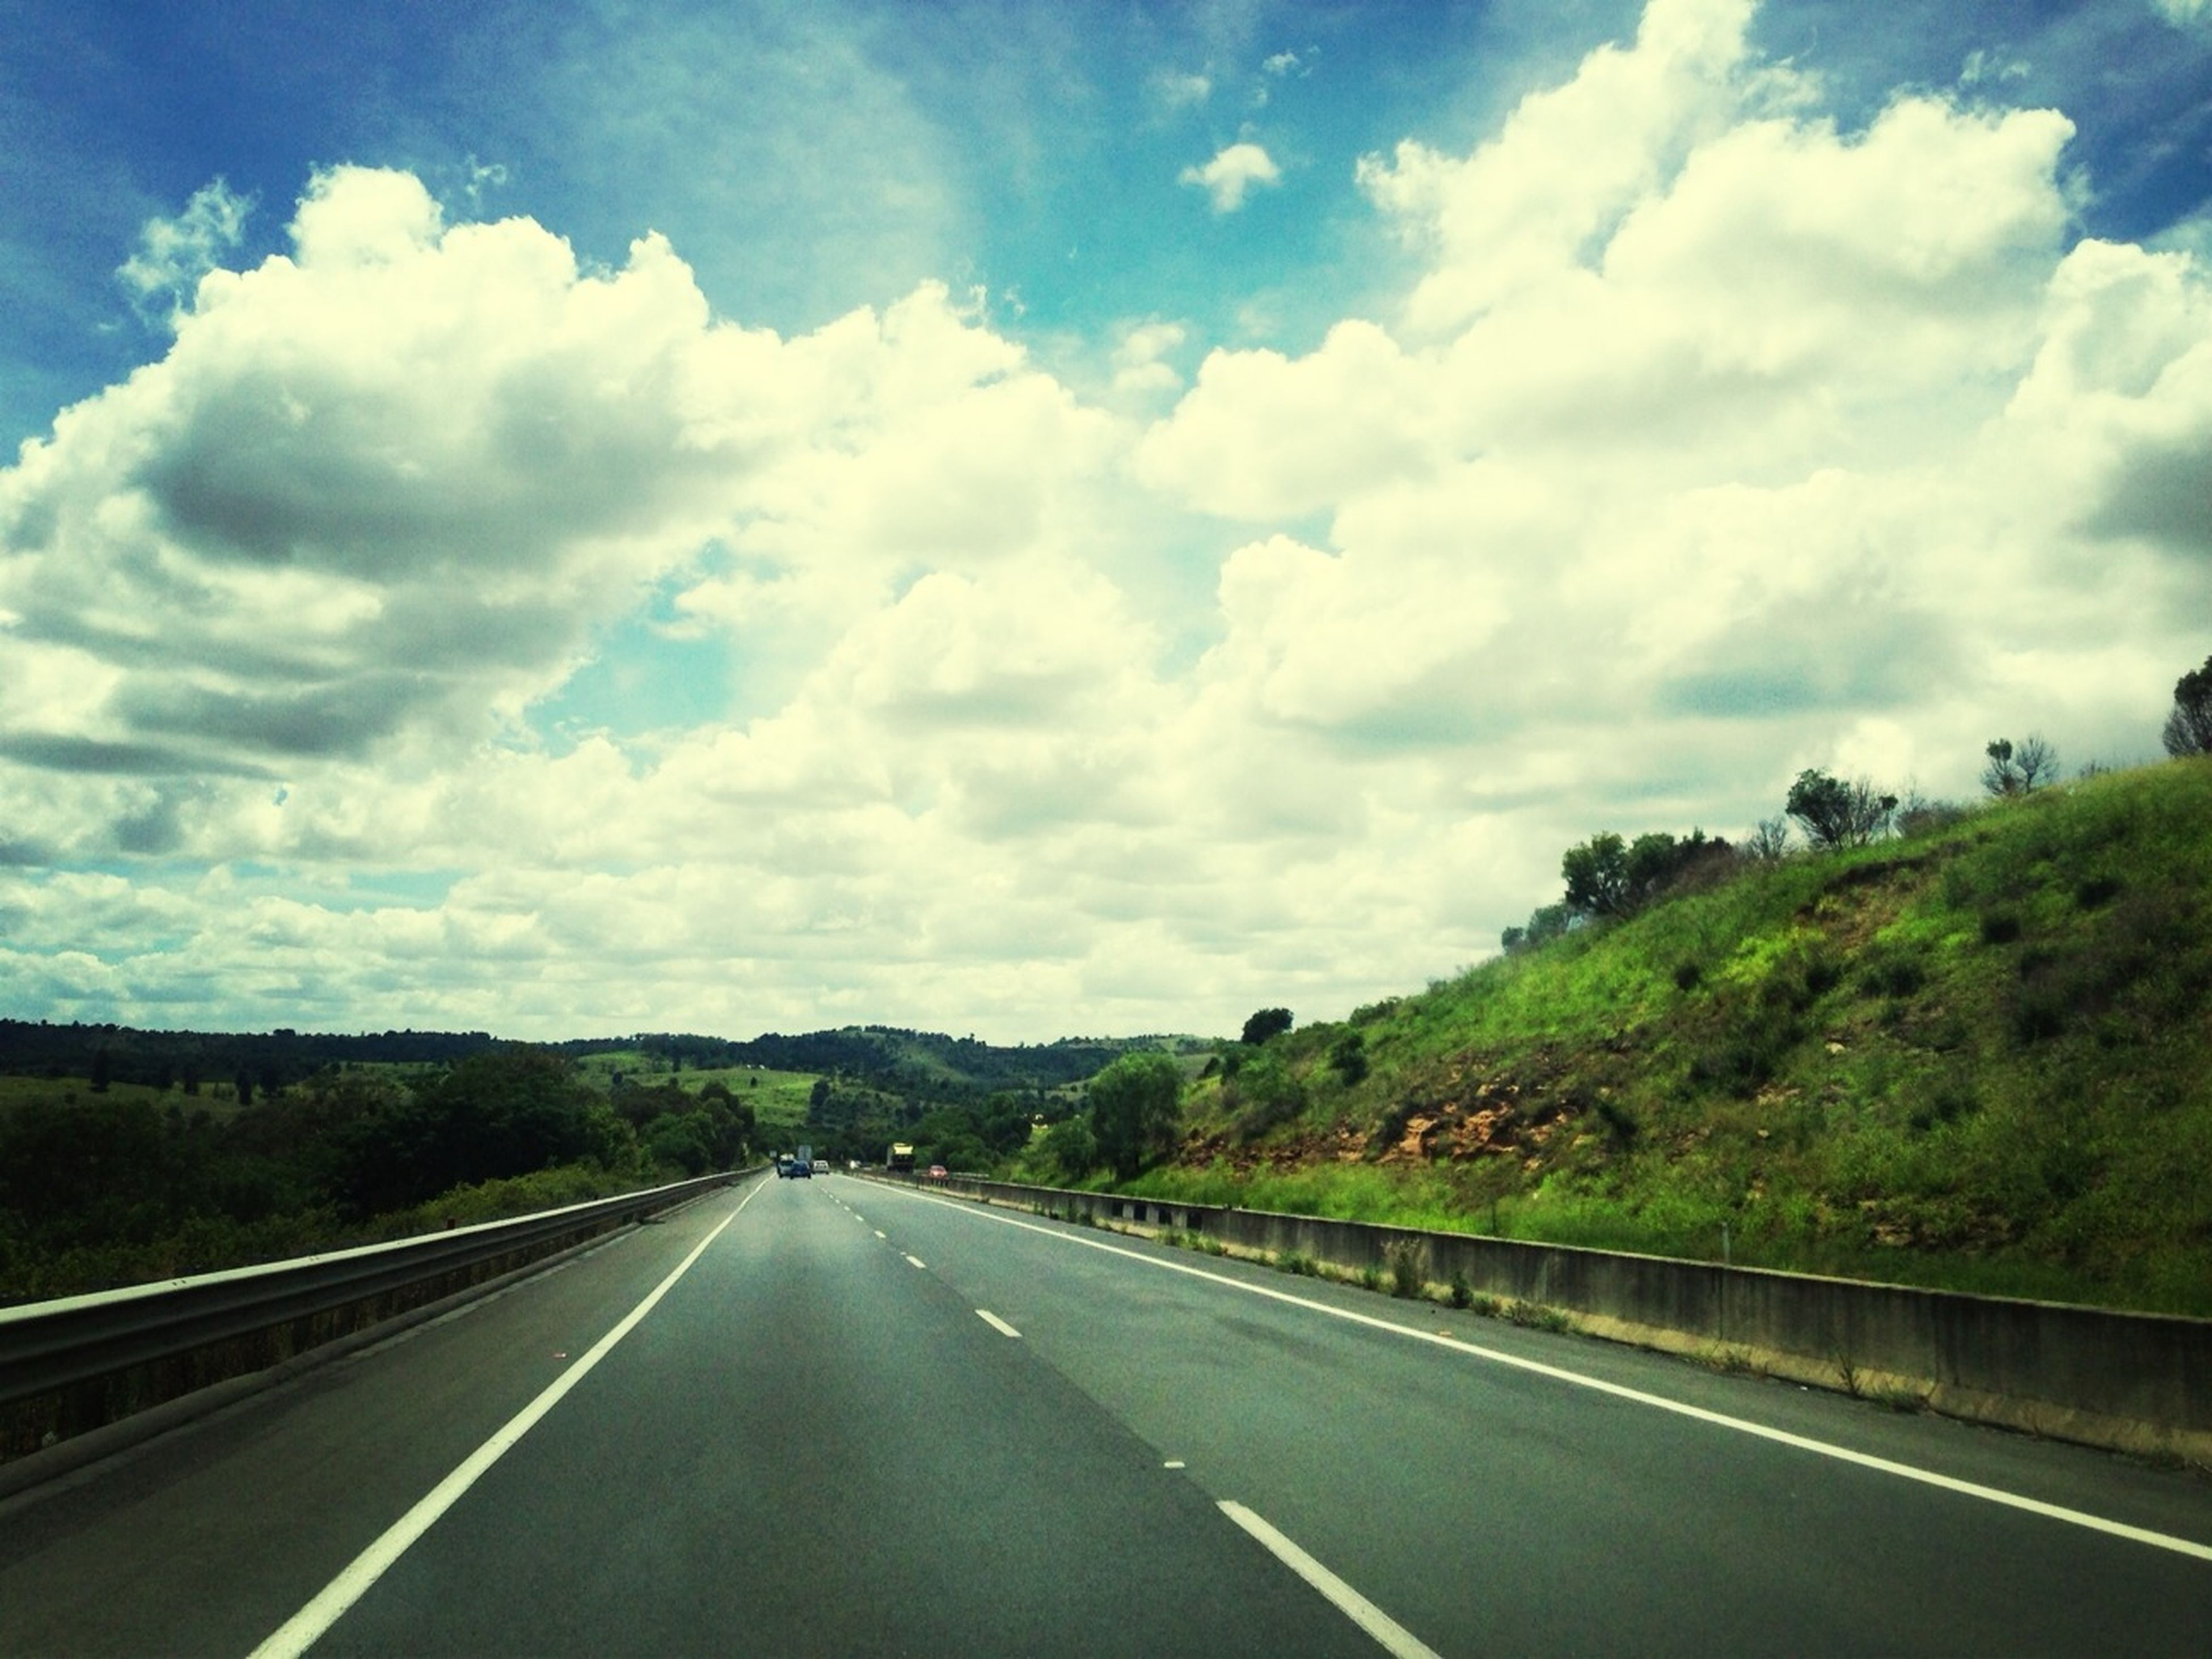 road, the way forward, transportation, road marking, sky, diminishing perspective, vanishing point, cloud - sky, country road, mountain, cloud, cloudy, empty road, highway, asphalt, landscape, empty, nature, street, day